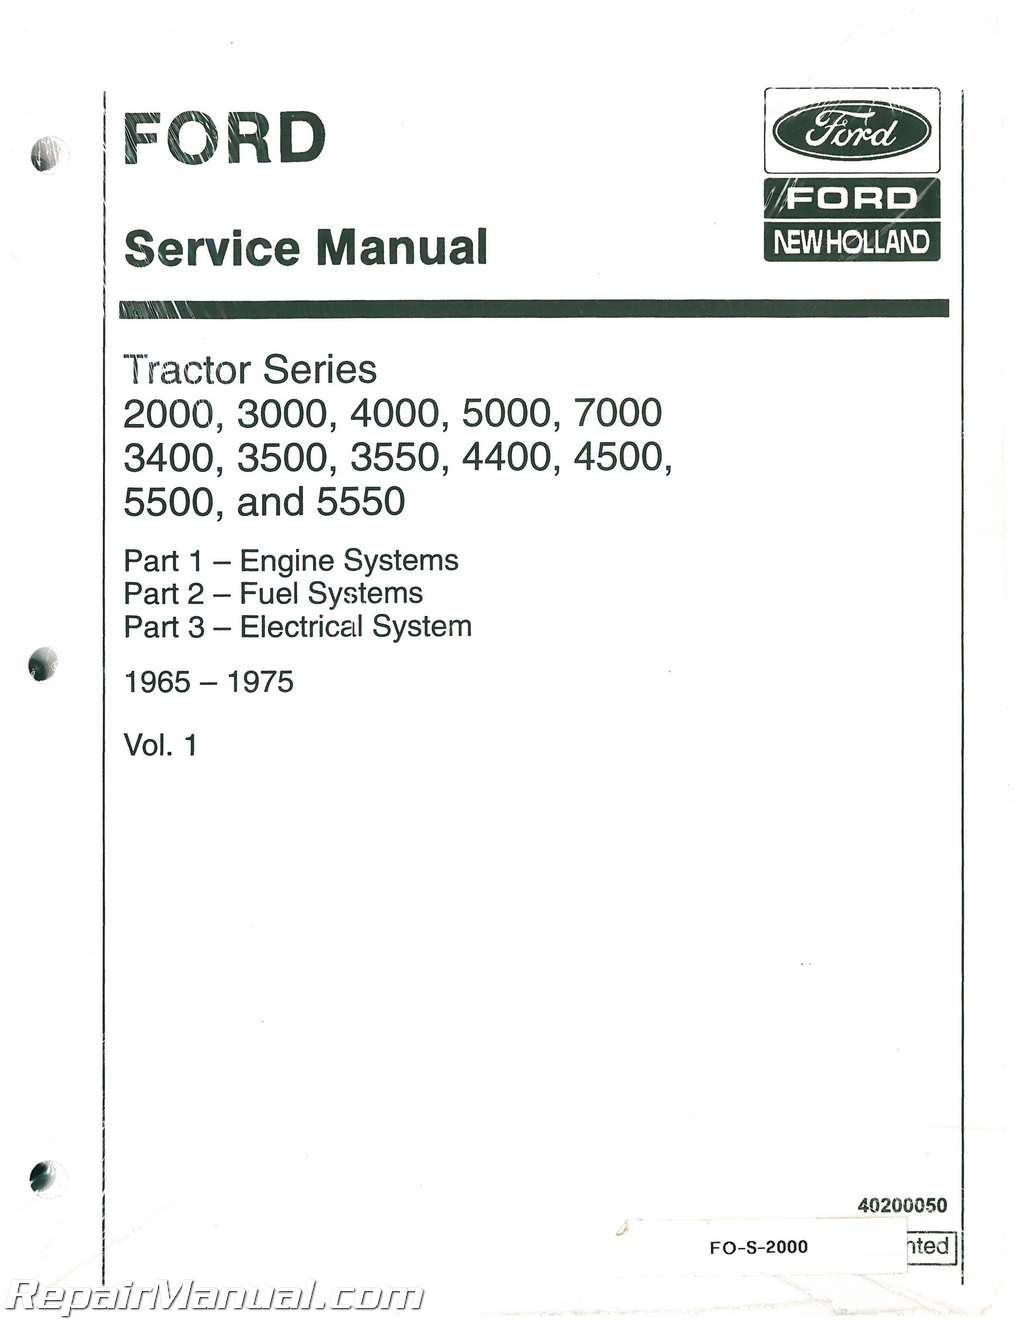 Ford 2000 3000 3400 3500 3550 4000 4400 4500 5000 5500 5550 7000 Service  Manual